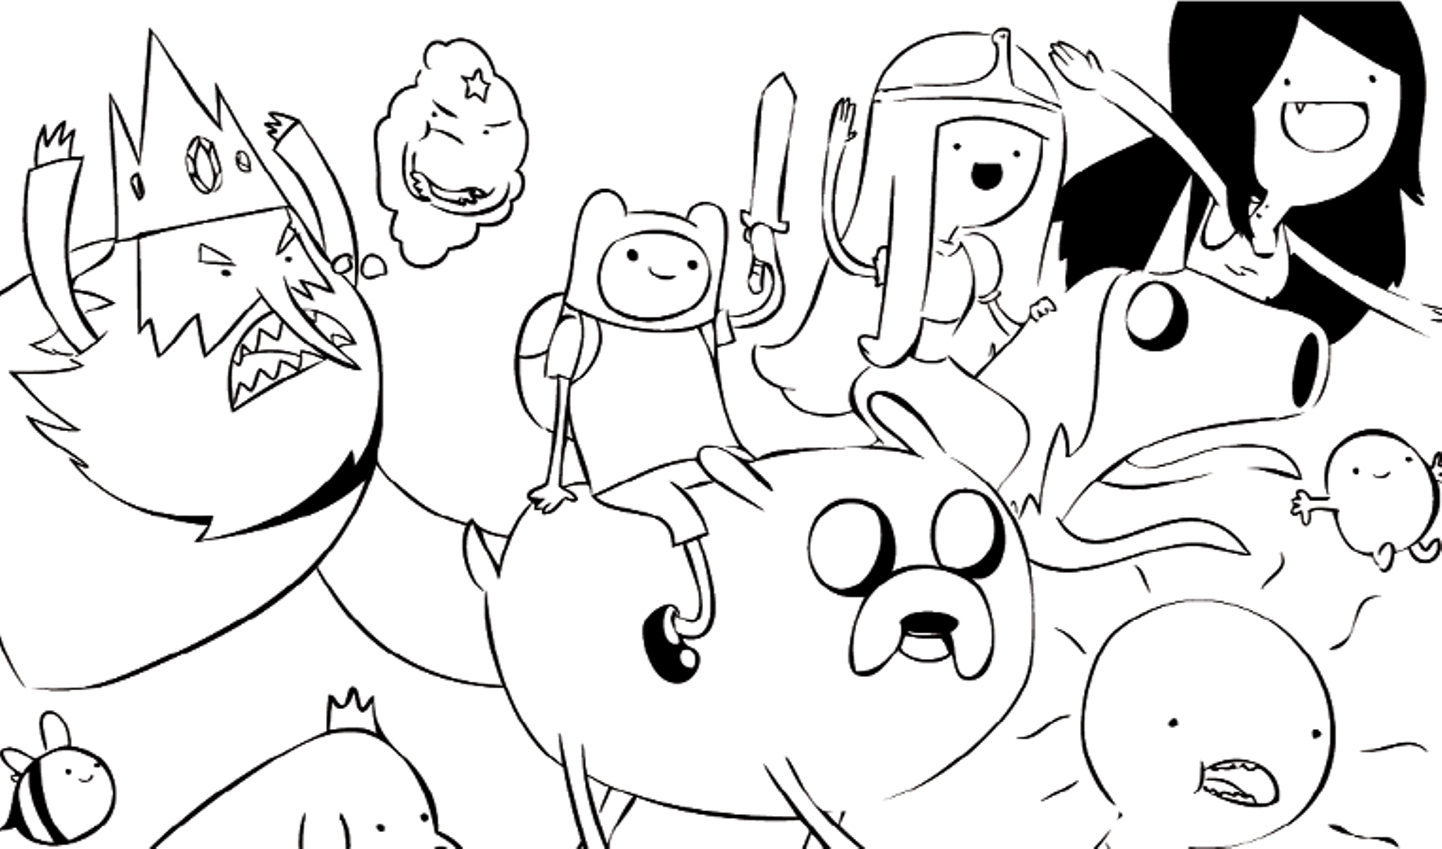 adventure time coloring pages printable - Cartoons Coloring Pages